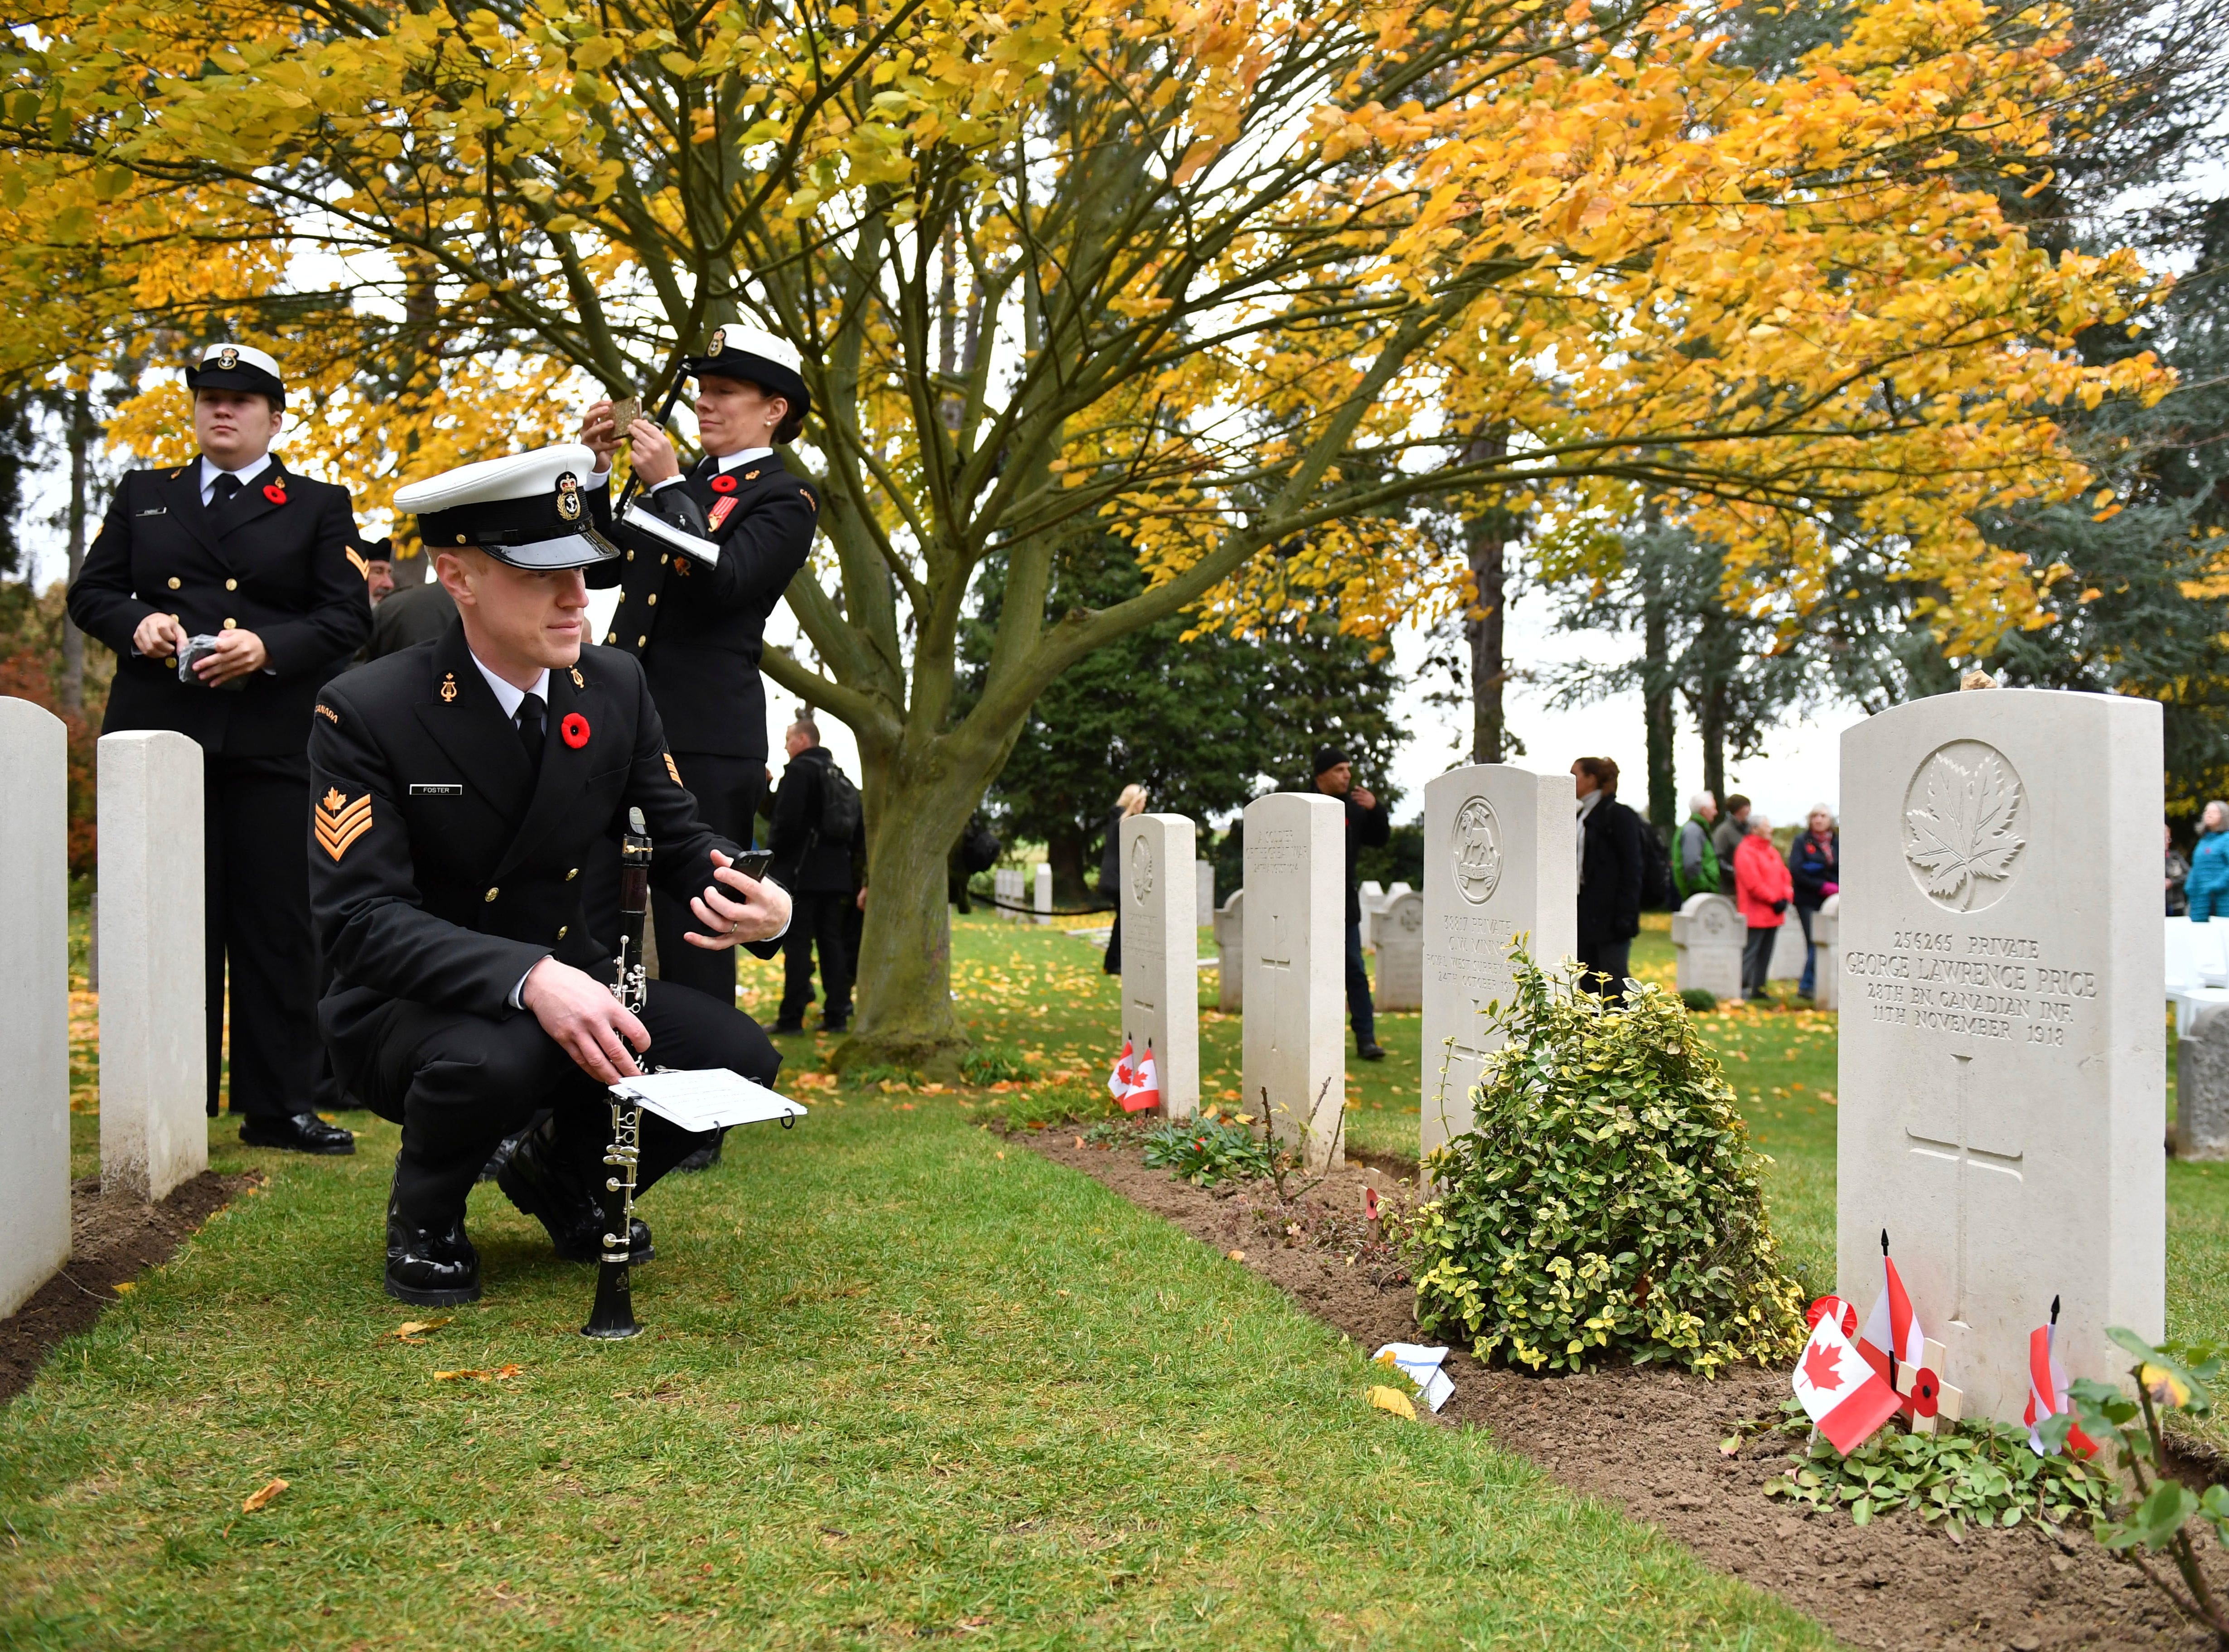 A Canadian soldier looks at the grave of Canadian World War I soldier George Lawrence Price at the St. Symphorien cemetery in Mons, Belgium, Saturday, Nov. 10, 2018. George Price was the last Canadian soldier to die in World War I.